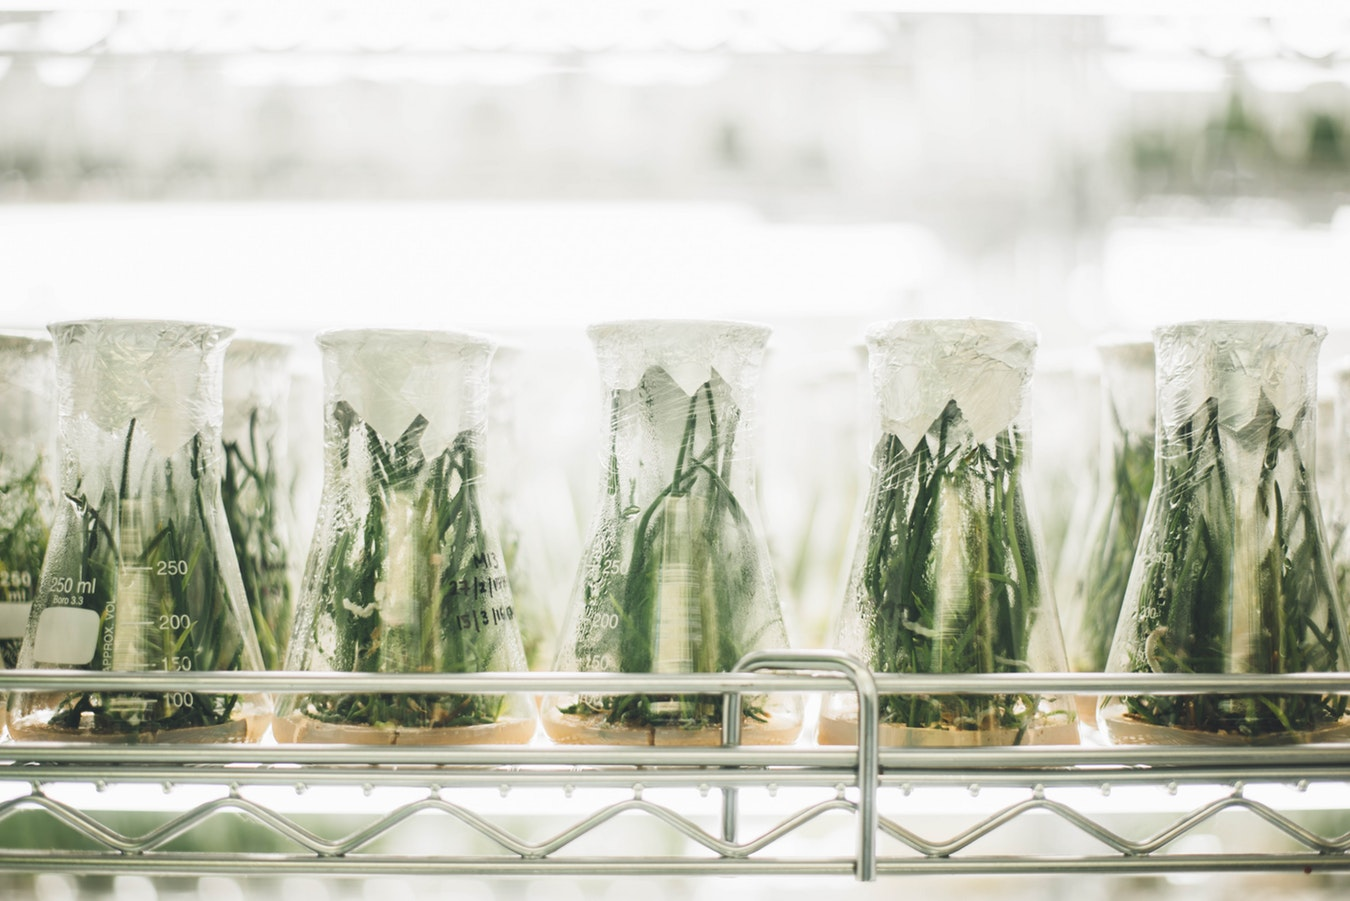 Green plants in large sealed beakers in a laboratory